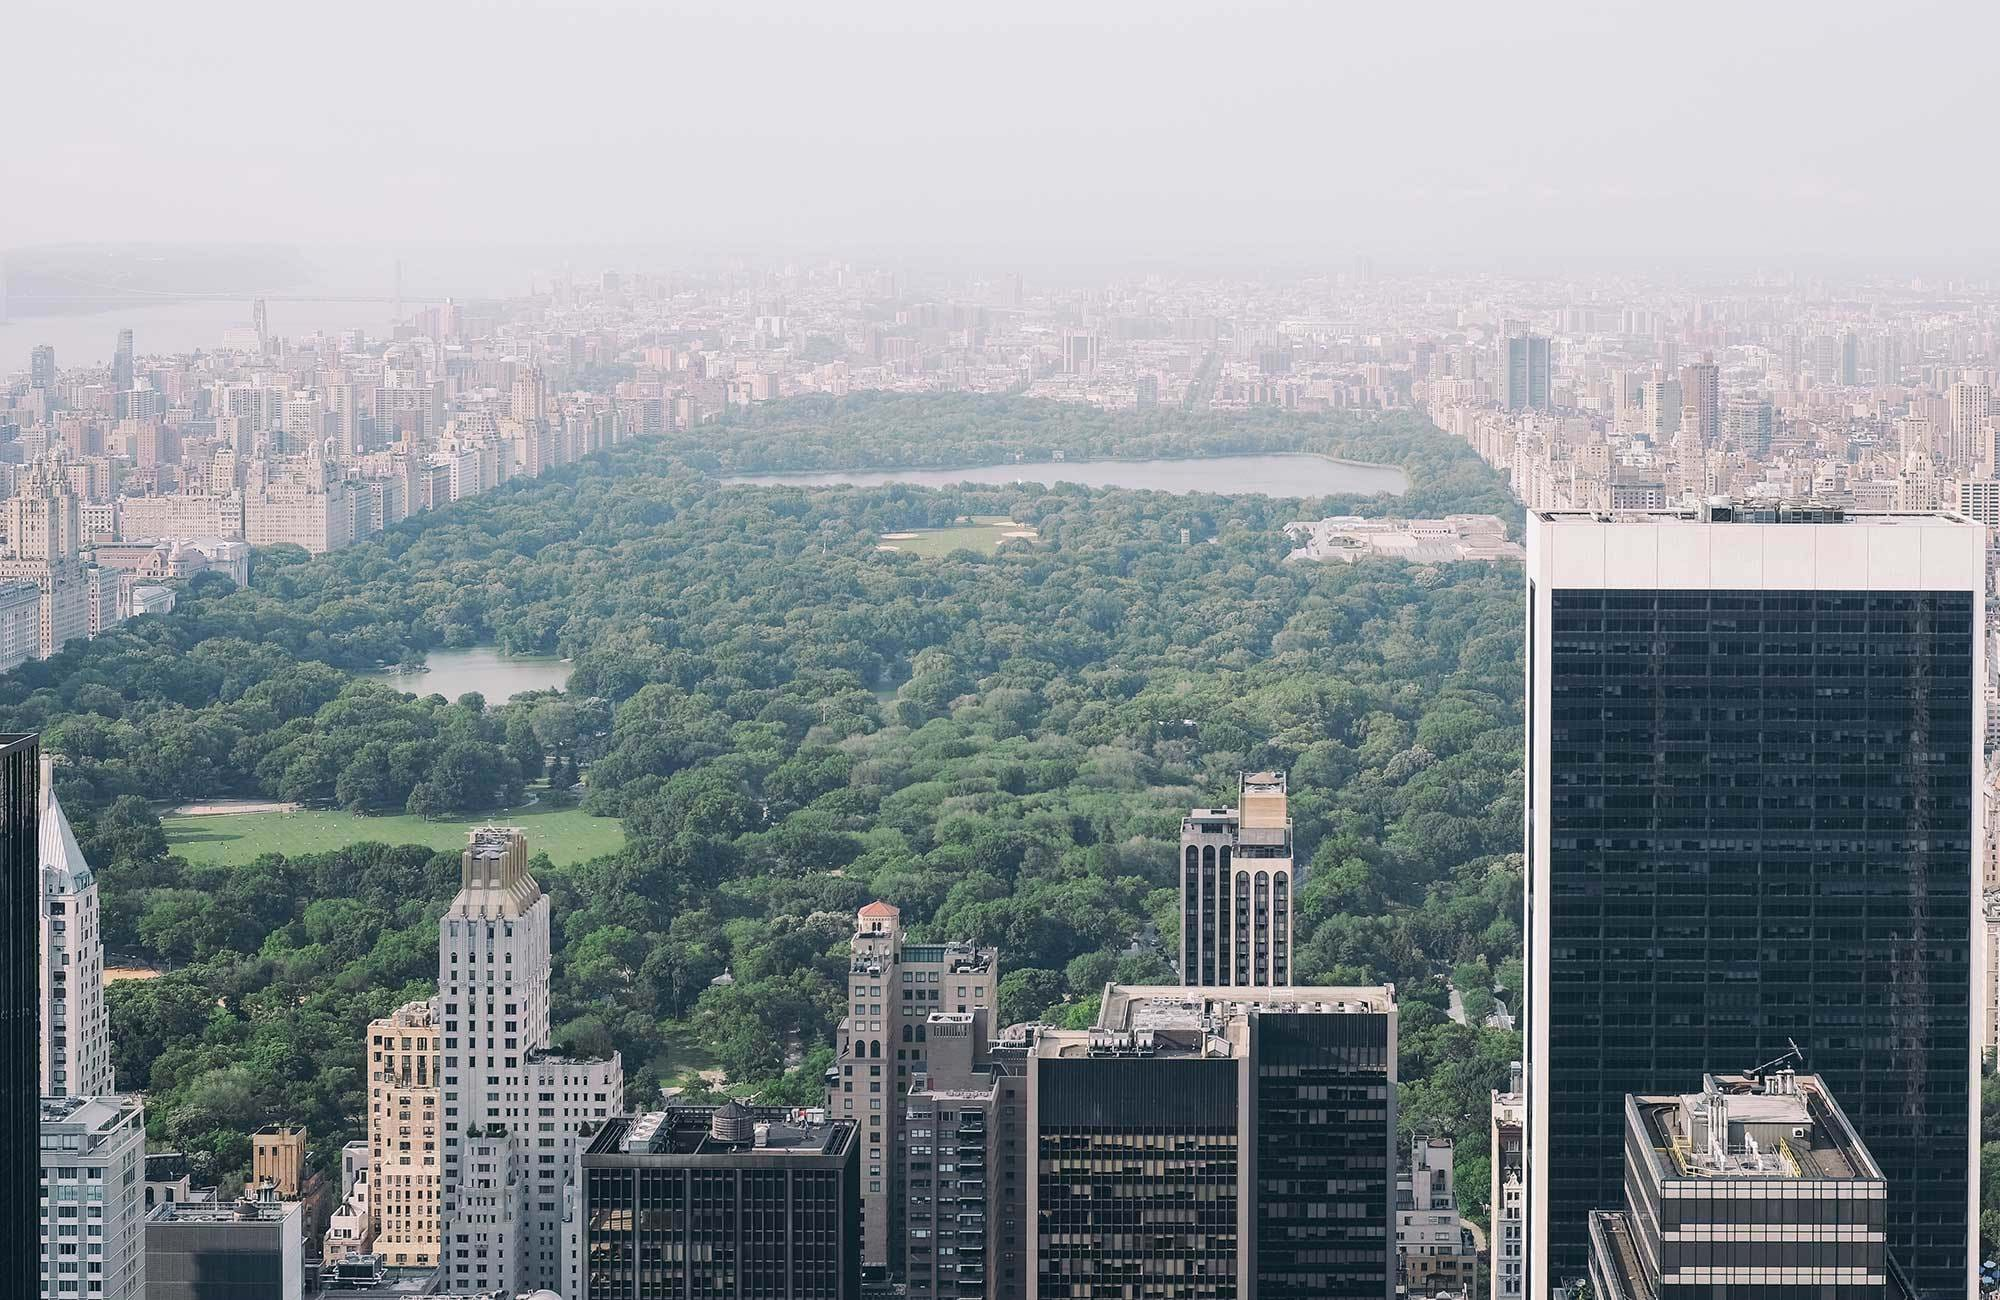 usa-new-york-central-park-aerial-view